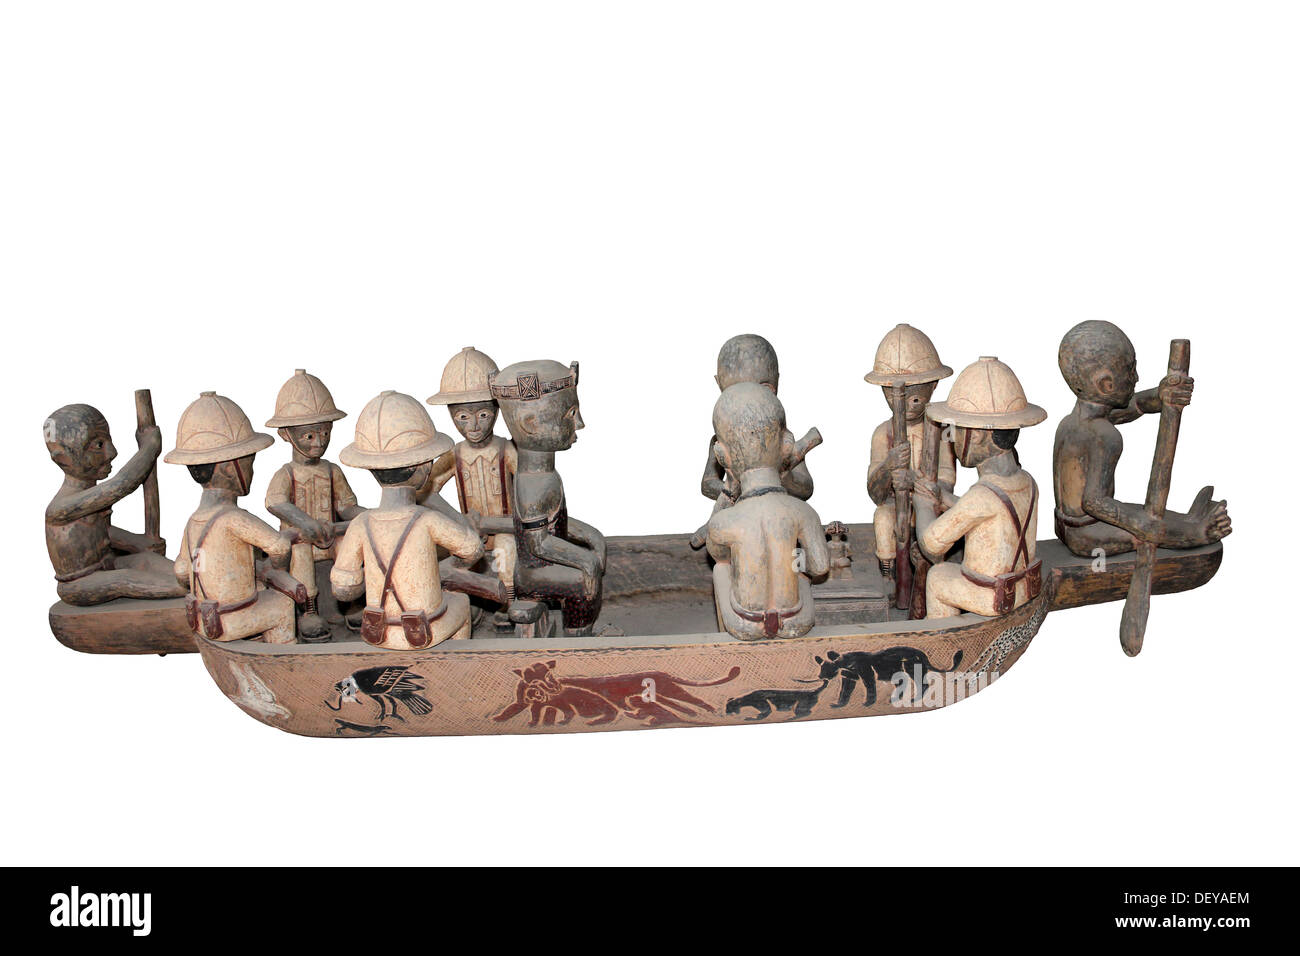 Wood carving depicting Europeans in Africa being paddled in a boat by natives. Possibly by the Yoruba people, Nigeria - Stock Image